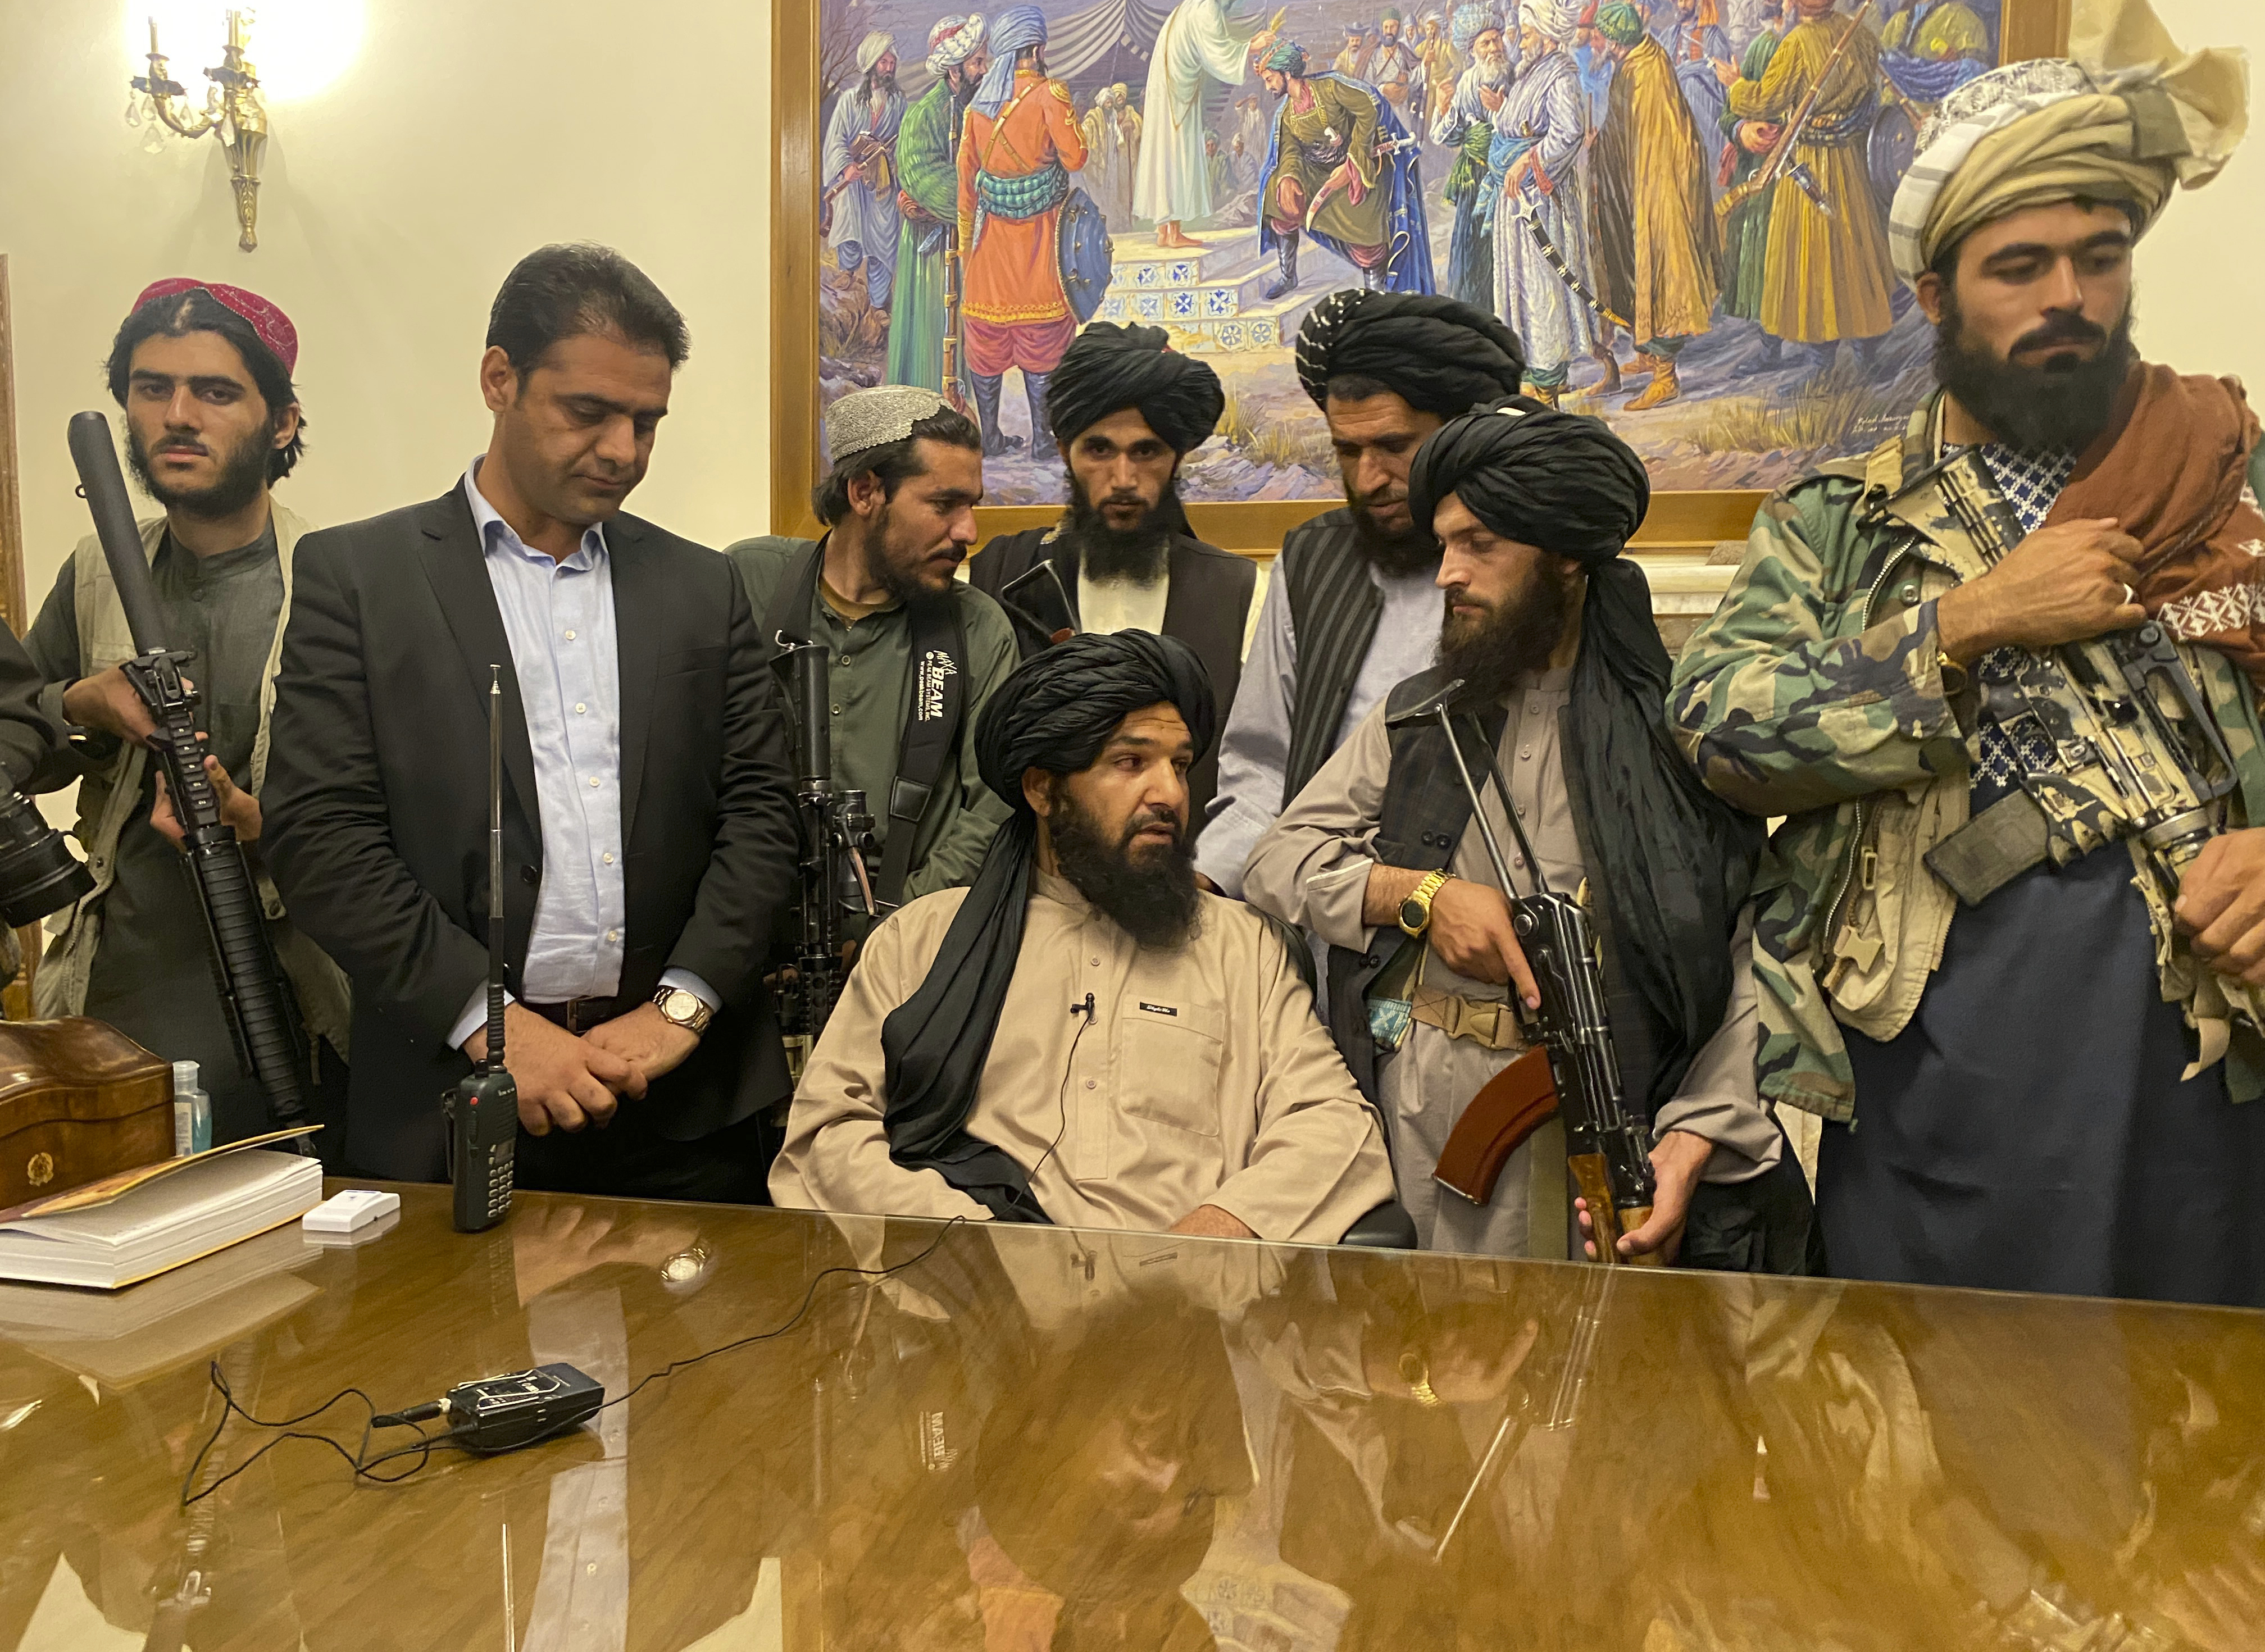 Taliban sweep into Afghan capital after government collapses - The  Washington Post